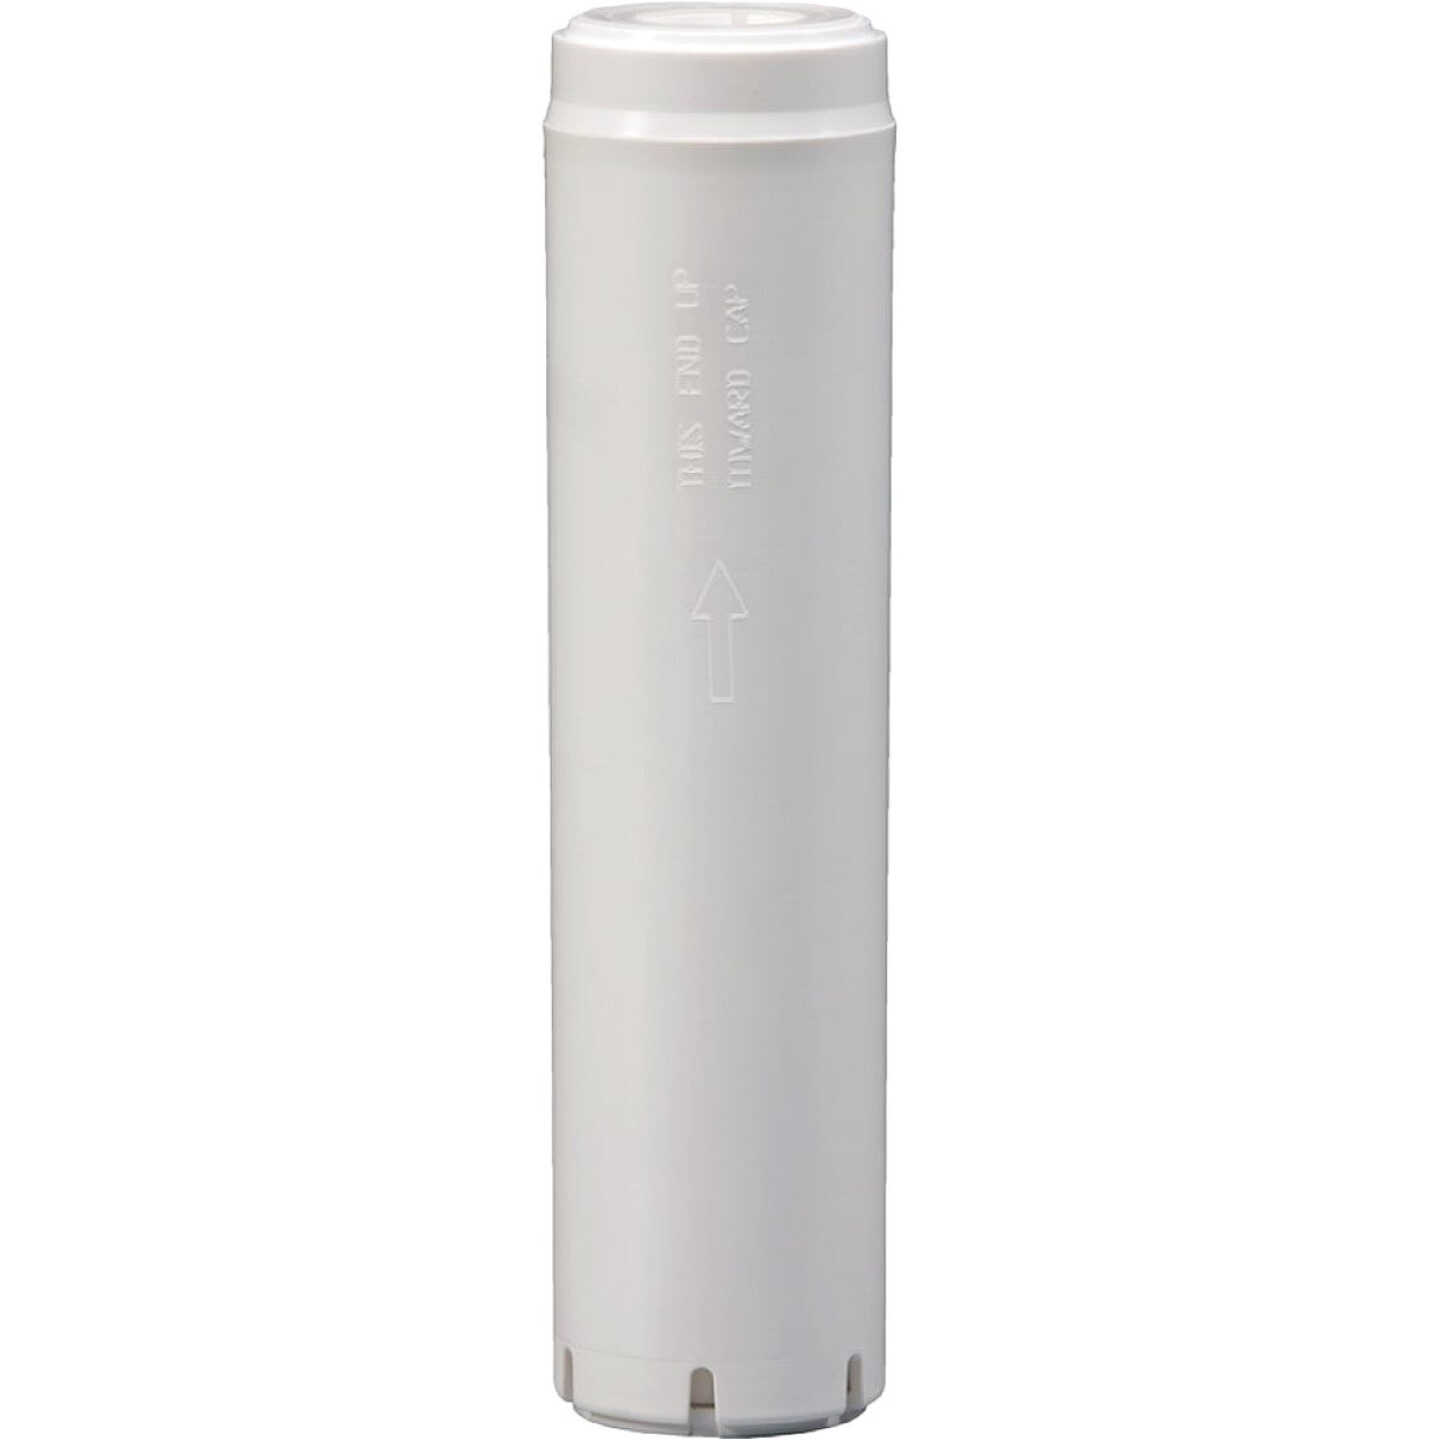 Culligan D-20A Under Sink Drinking Water Filter Cartridge Image 1